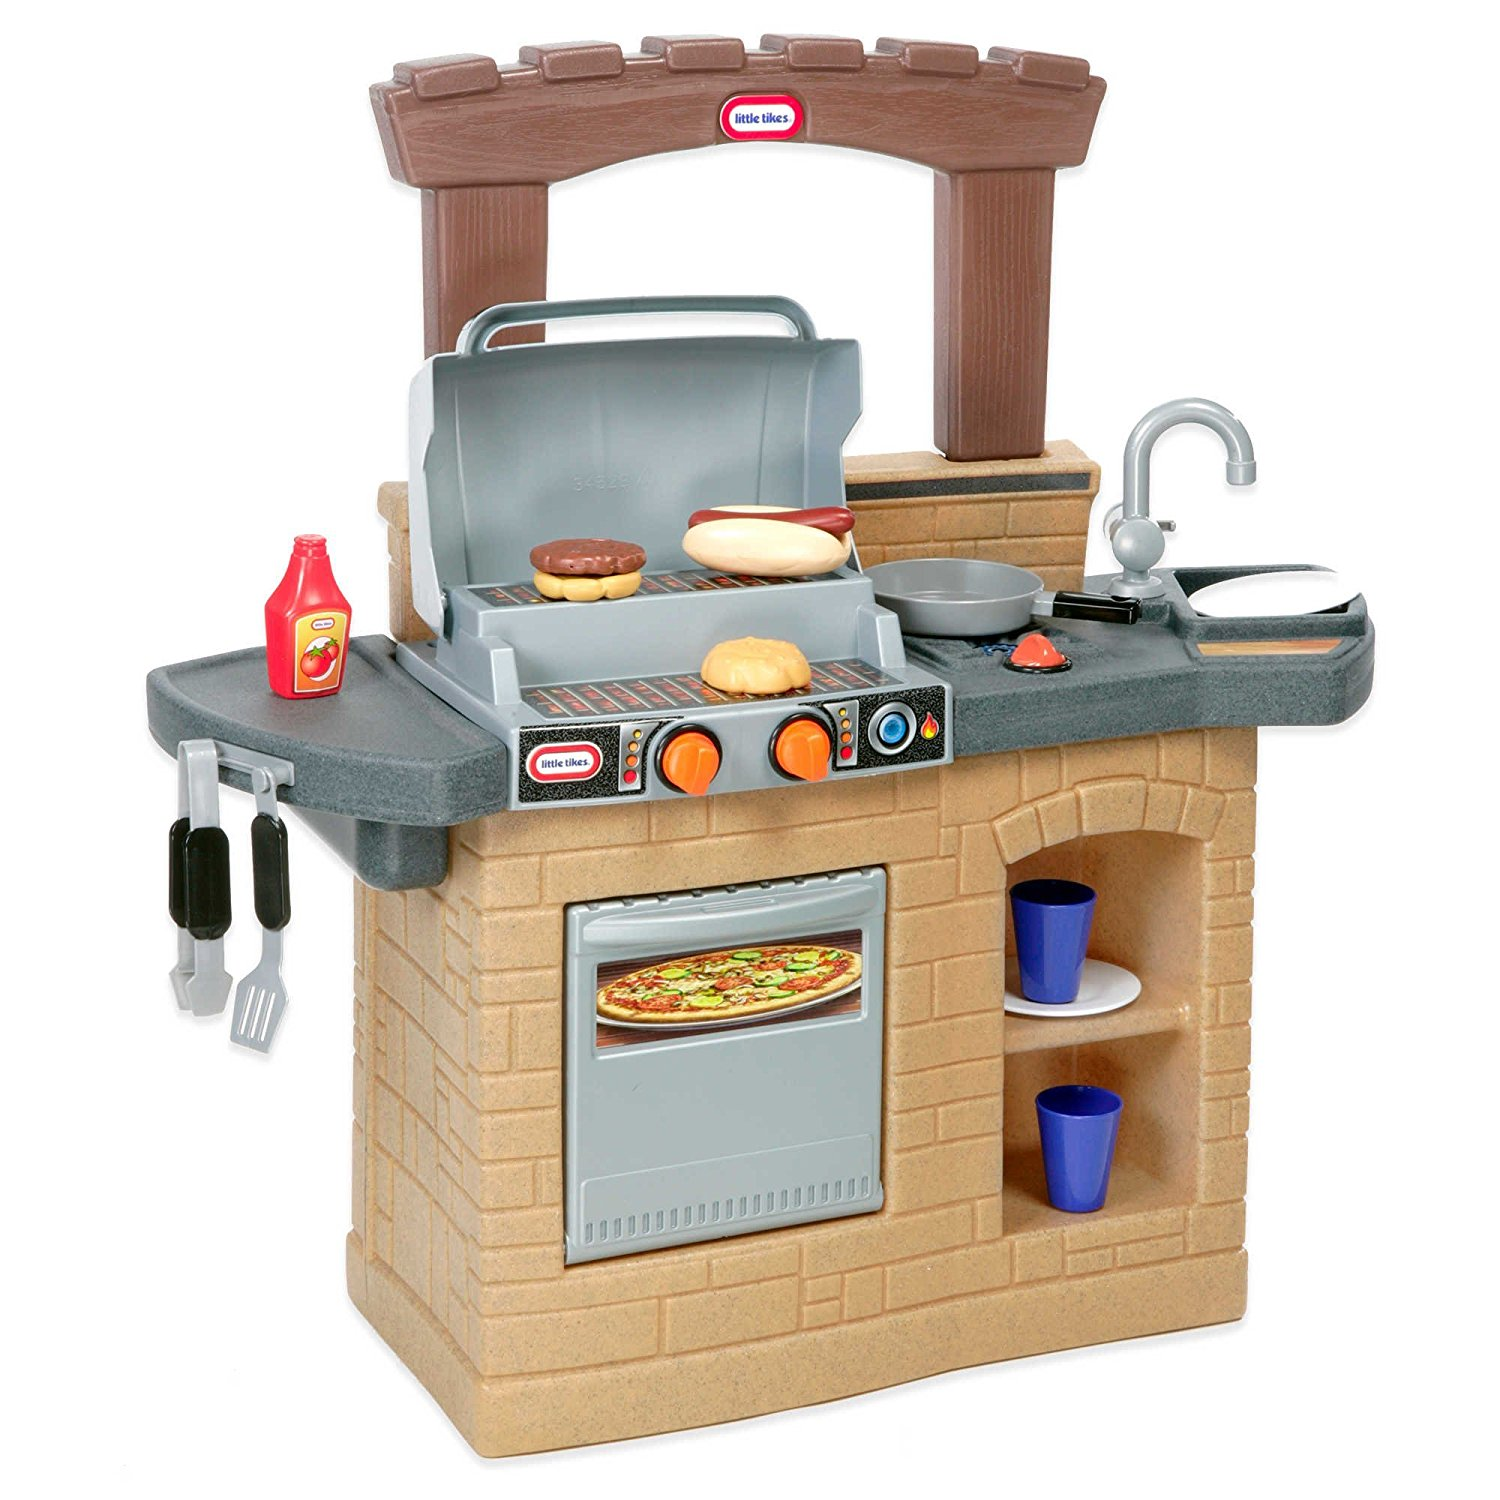 Sleek and Modern Little Tikes® 633911M Cook 'n Play Outdoor Kids BBQ™ Features Modern Styling with Working Oven ,Fridge doors,Clicking knobs, Best for your King and Queen children 2 years and up